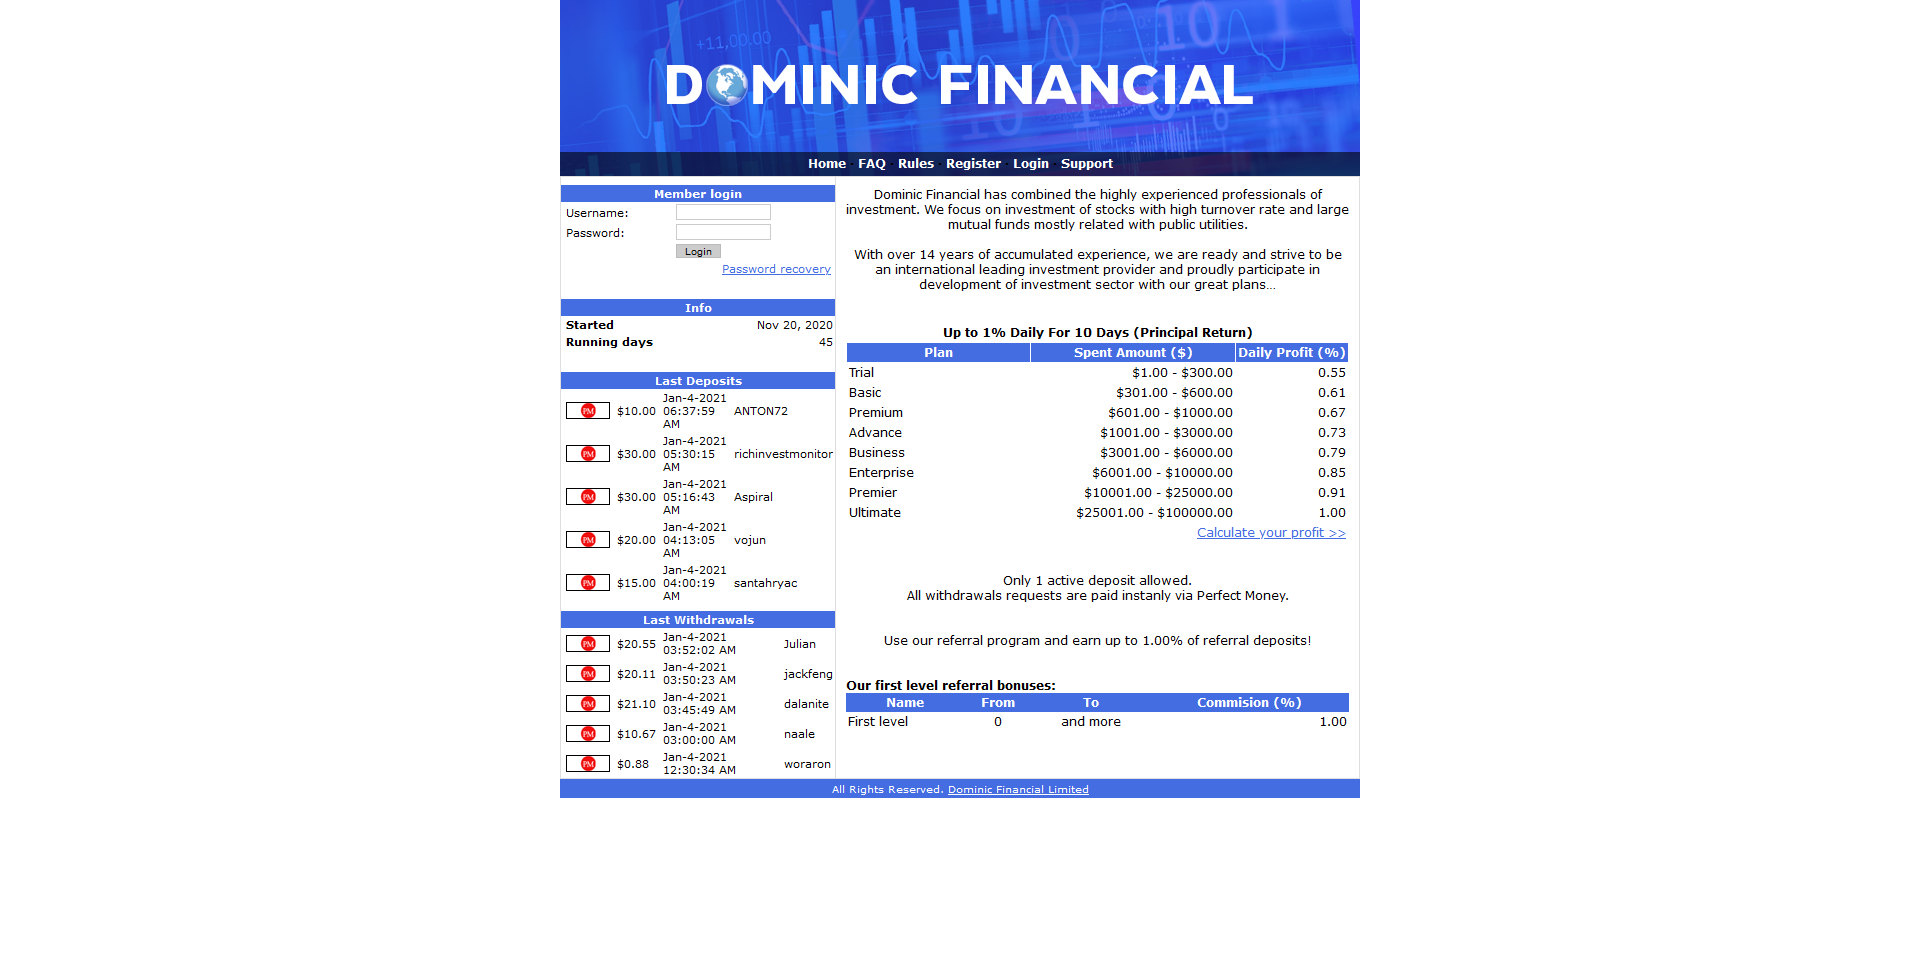 Dominic Financial Limited